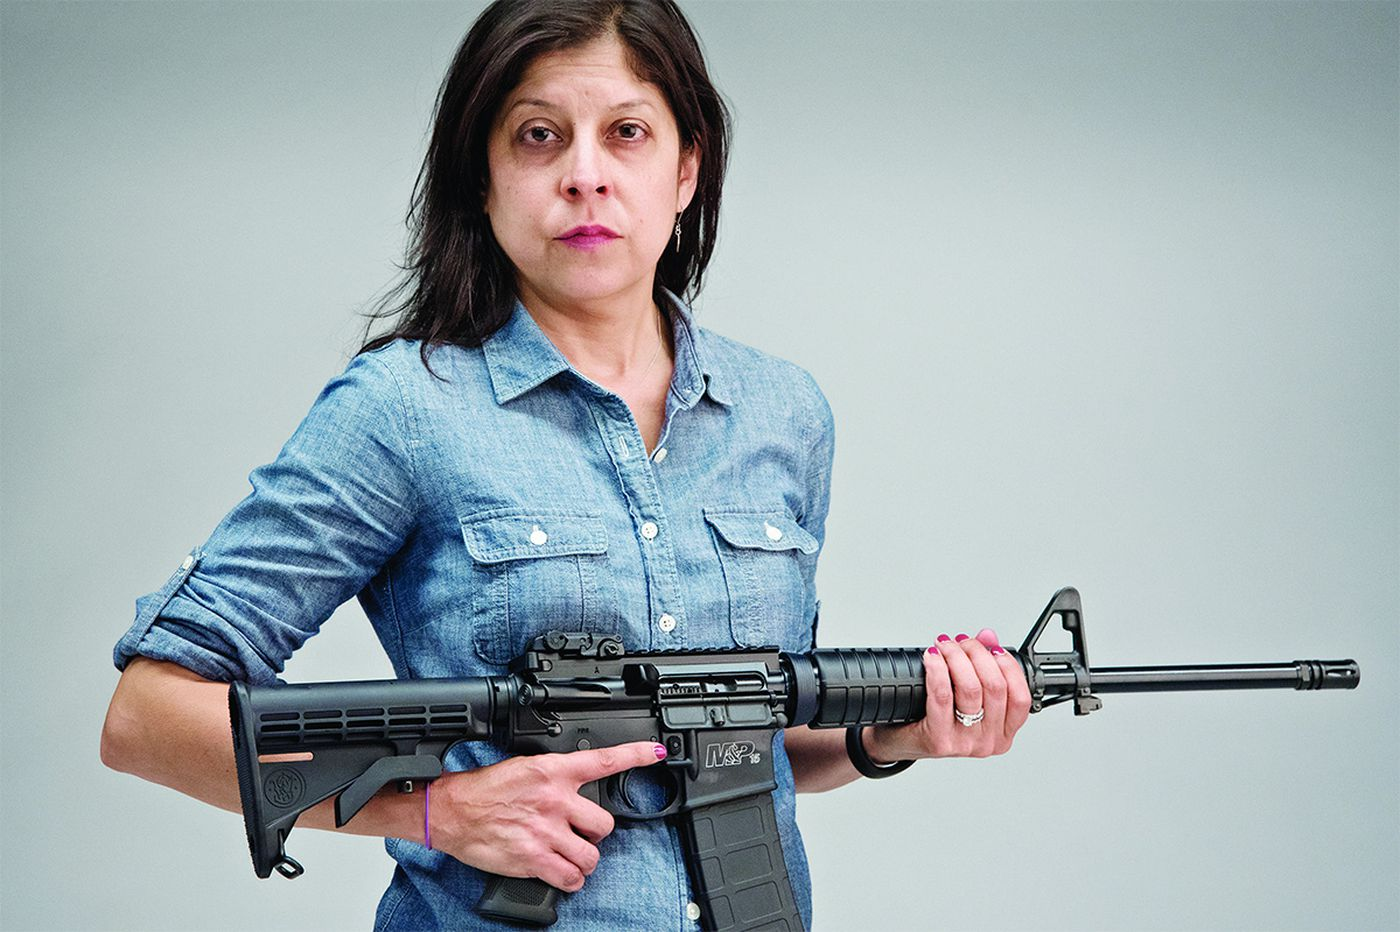 Ubiñas: For some folks, it's easier to get a gun than to get the point